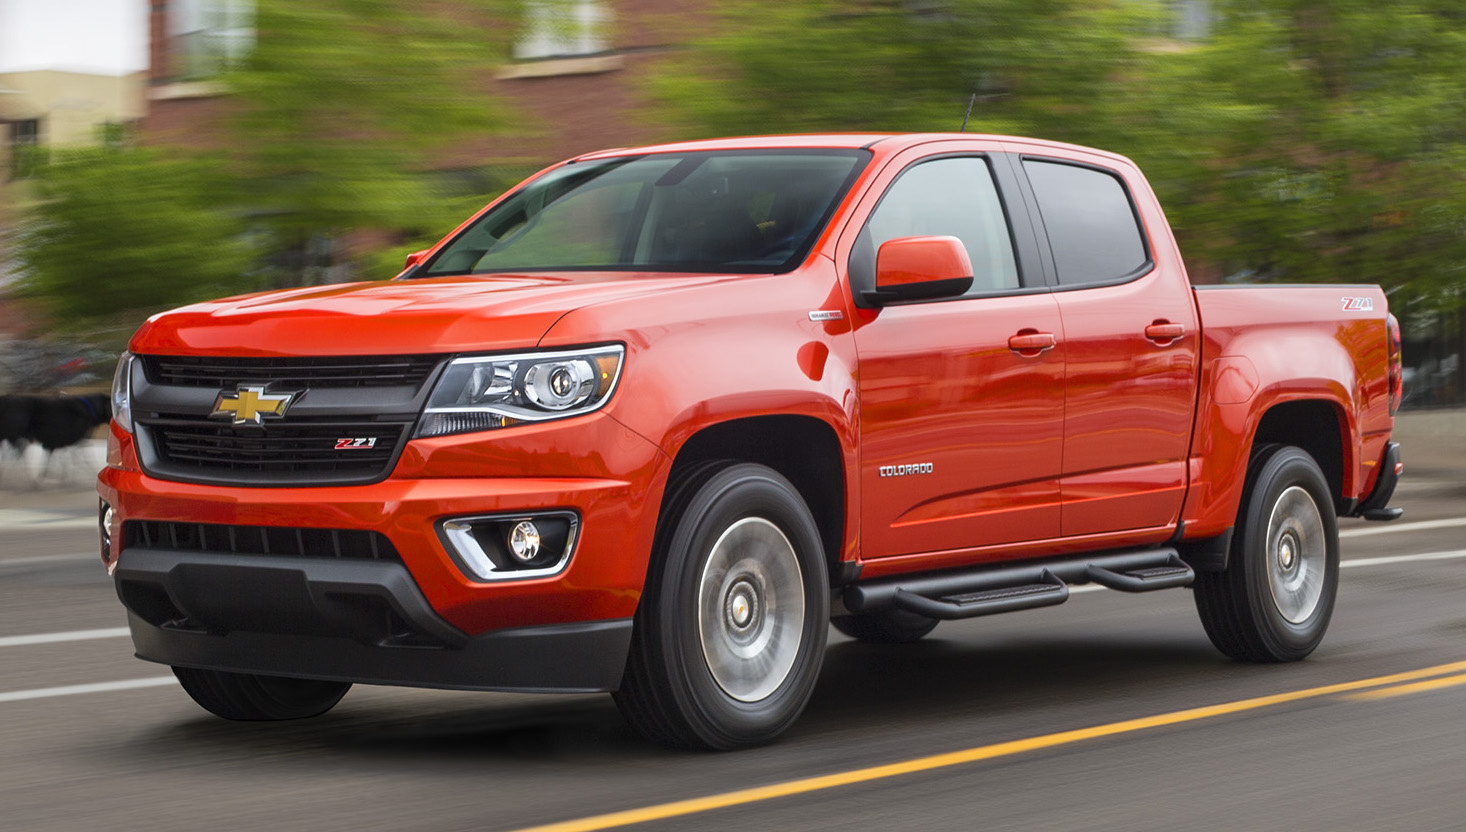 Chevy Captiva Used For Sale 2016 Chevrolet Colorado - Review - CarGurus